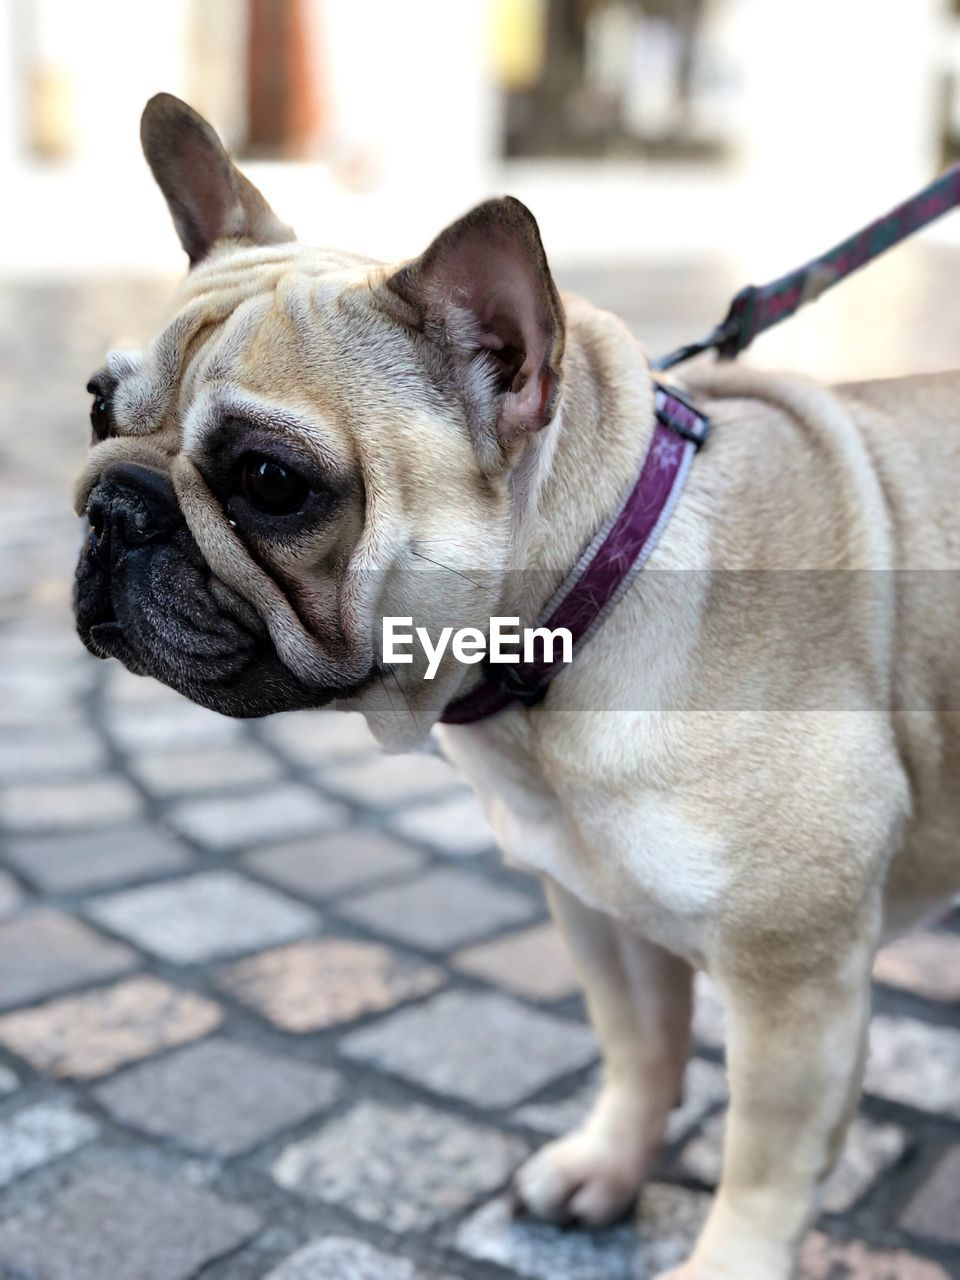 one animal, canine, dog, pets, domestic, mammal, animal, domestic animals, animal themes, vertebrate, focus on foreground, leash, french bulldog, close-up, pet leash, no people, lap dog, pug, looking away, day, small, animal head